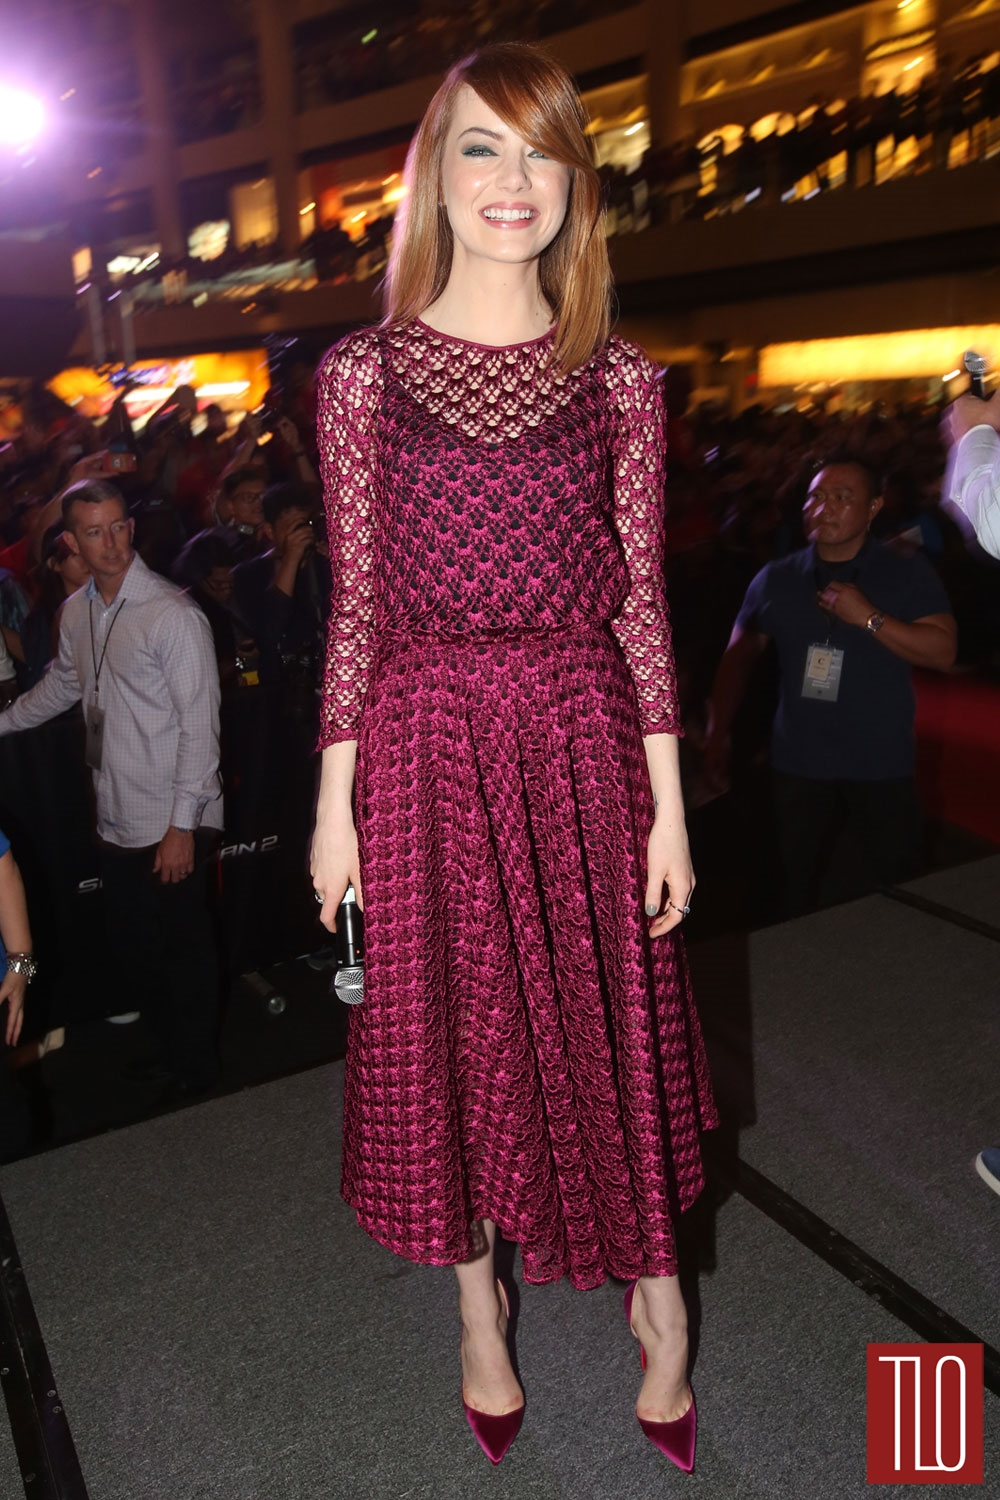 Emma-Stone-Spider-Man-Fan-Event-Christian-Dior-Tom-Lorenzo-Site-TLO (1)